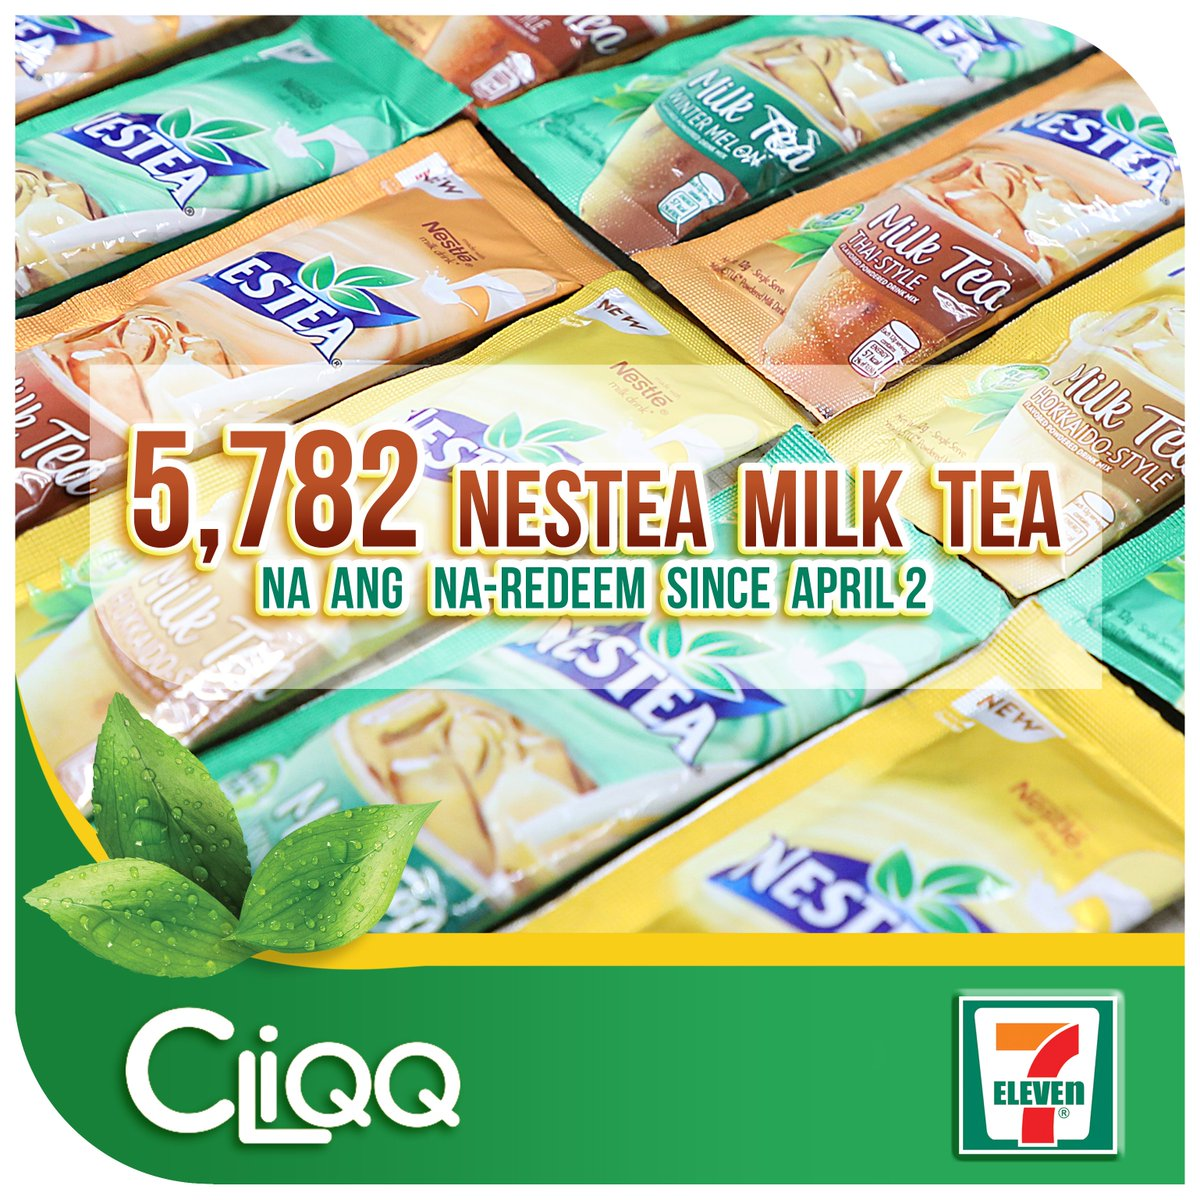 More than 5,000 na ang nag redeem!   Kaya wag magpahuli! Start redeeming 7-Eleven rewards with the CLiQQ app today: https://t.co/NGzH7rbfkn Get Nestea Milk Tea 12g with your 20 CLIQQ points https://t.co/c6PyxYxEdO